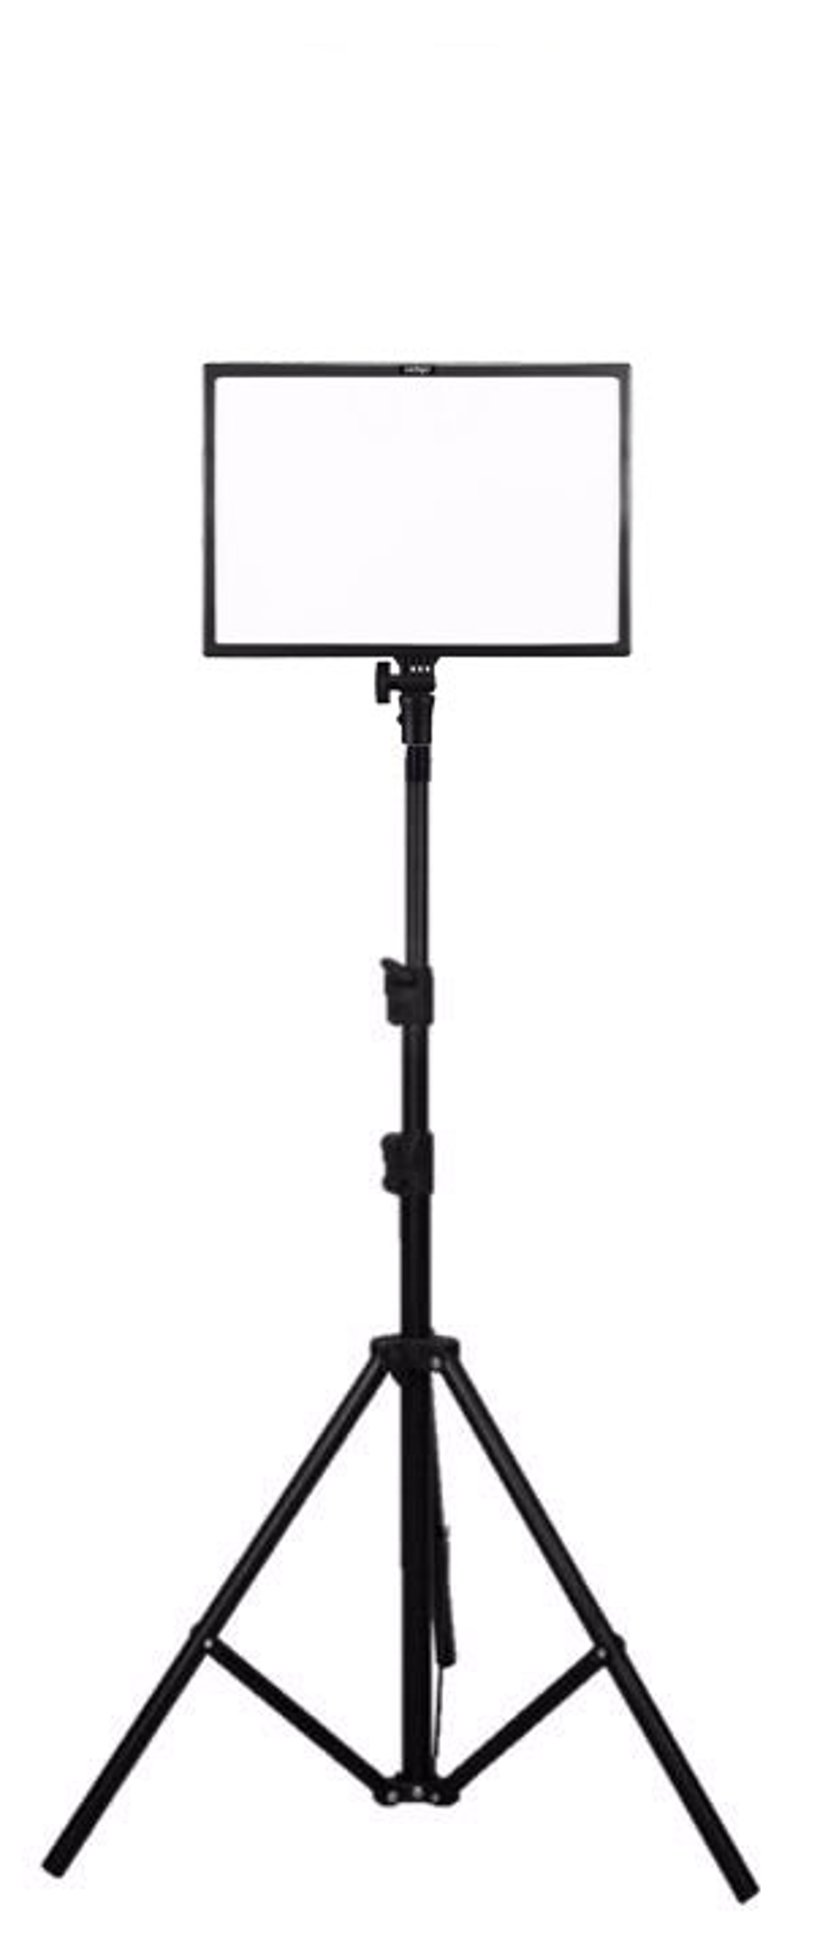 Ledgo Kit Ledgo E268 With Light Stand LG-L170